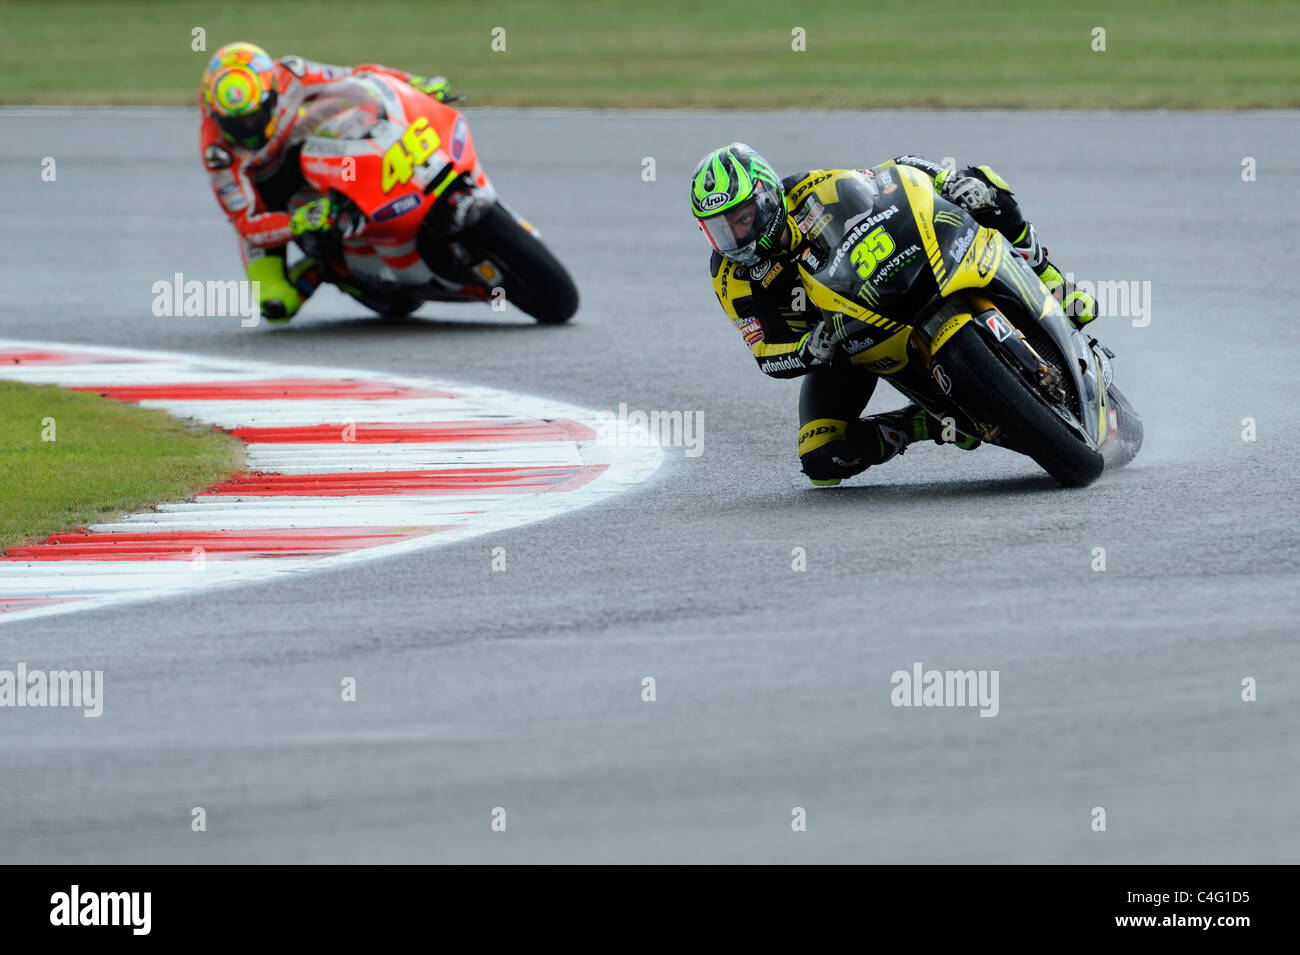 cal crutchlow and valentino rossi in wet conditions, moto gp, 2011, - Stock Image